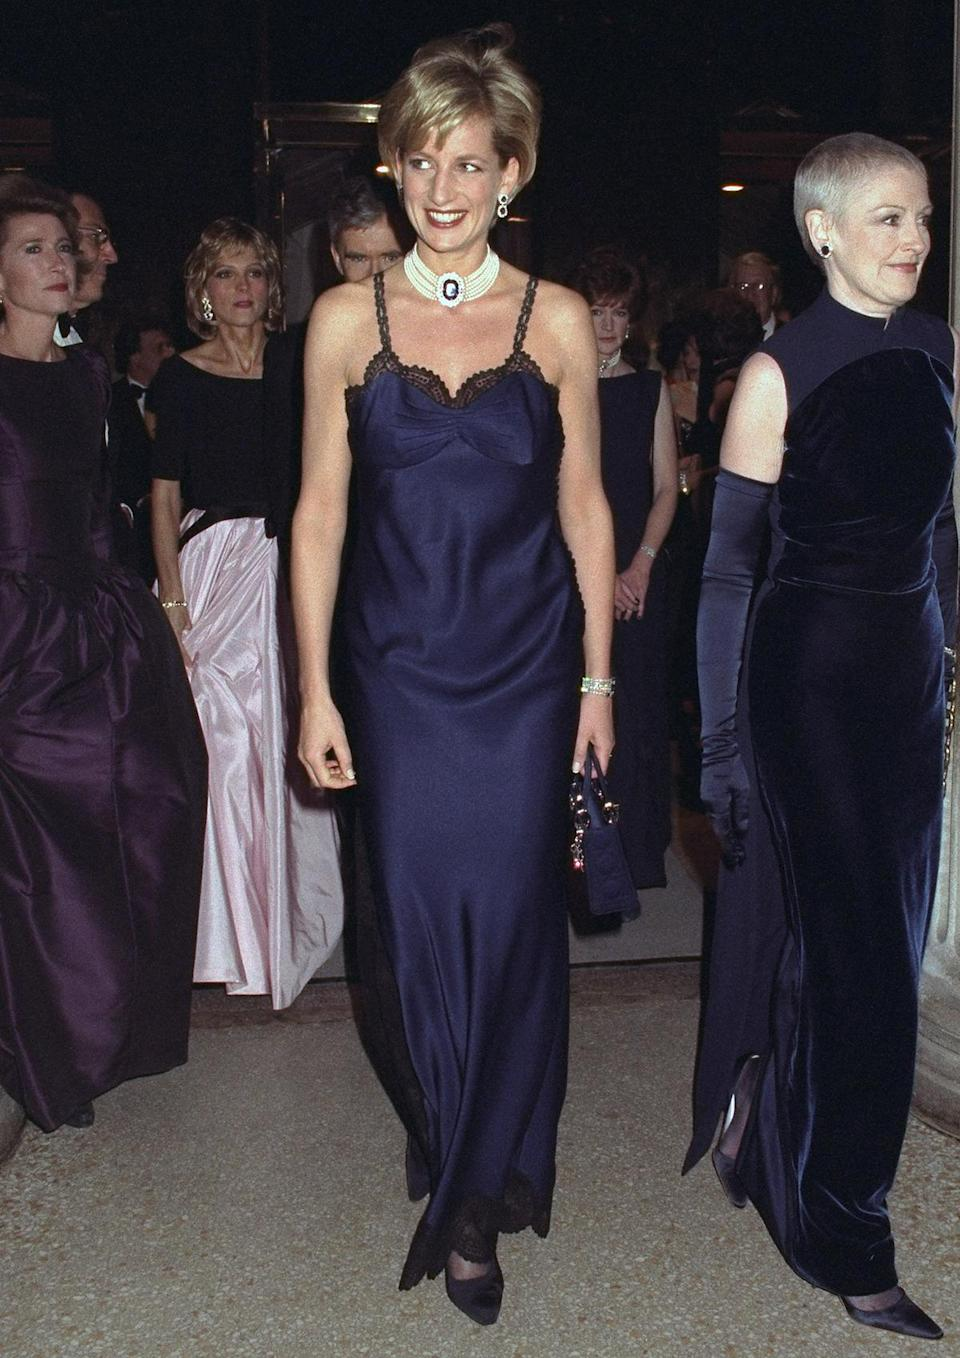 <p>Following her divorce from Prince Charles, Diana once again traveled to N.Y.C., attending the Costume Institute Gala — now known as the Met Gala — in 1996, wearing a navy slip dress. </p>